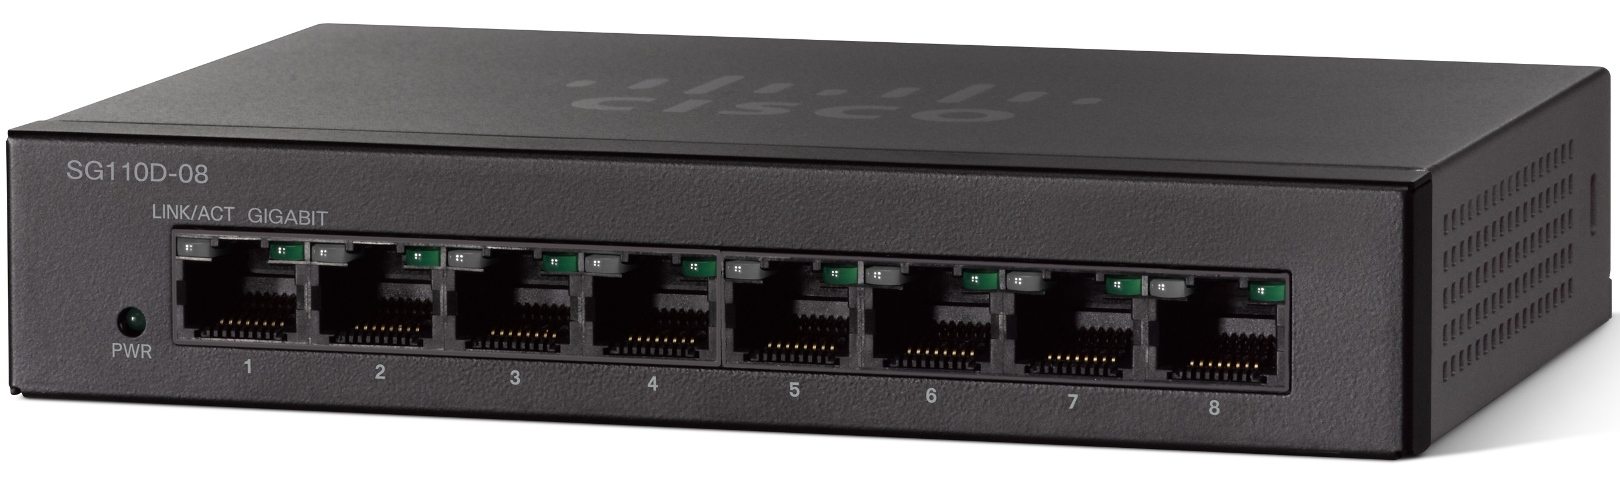 Cisco SG110D-08 8-Port Gigabit Unmanaged Switch